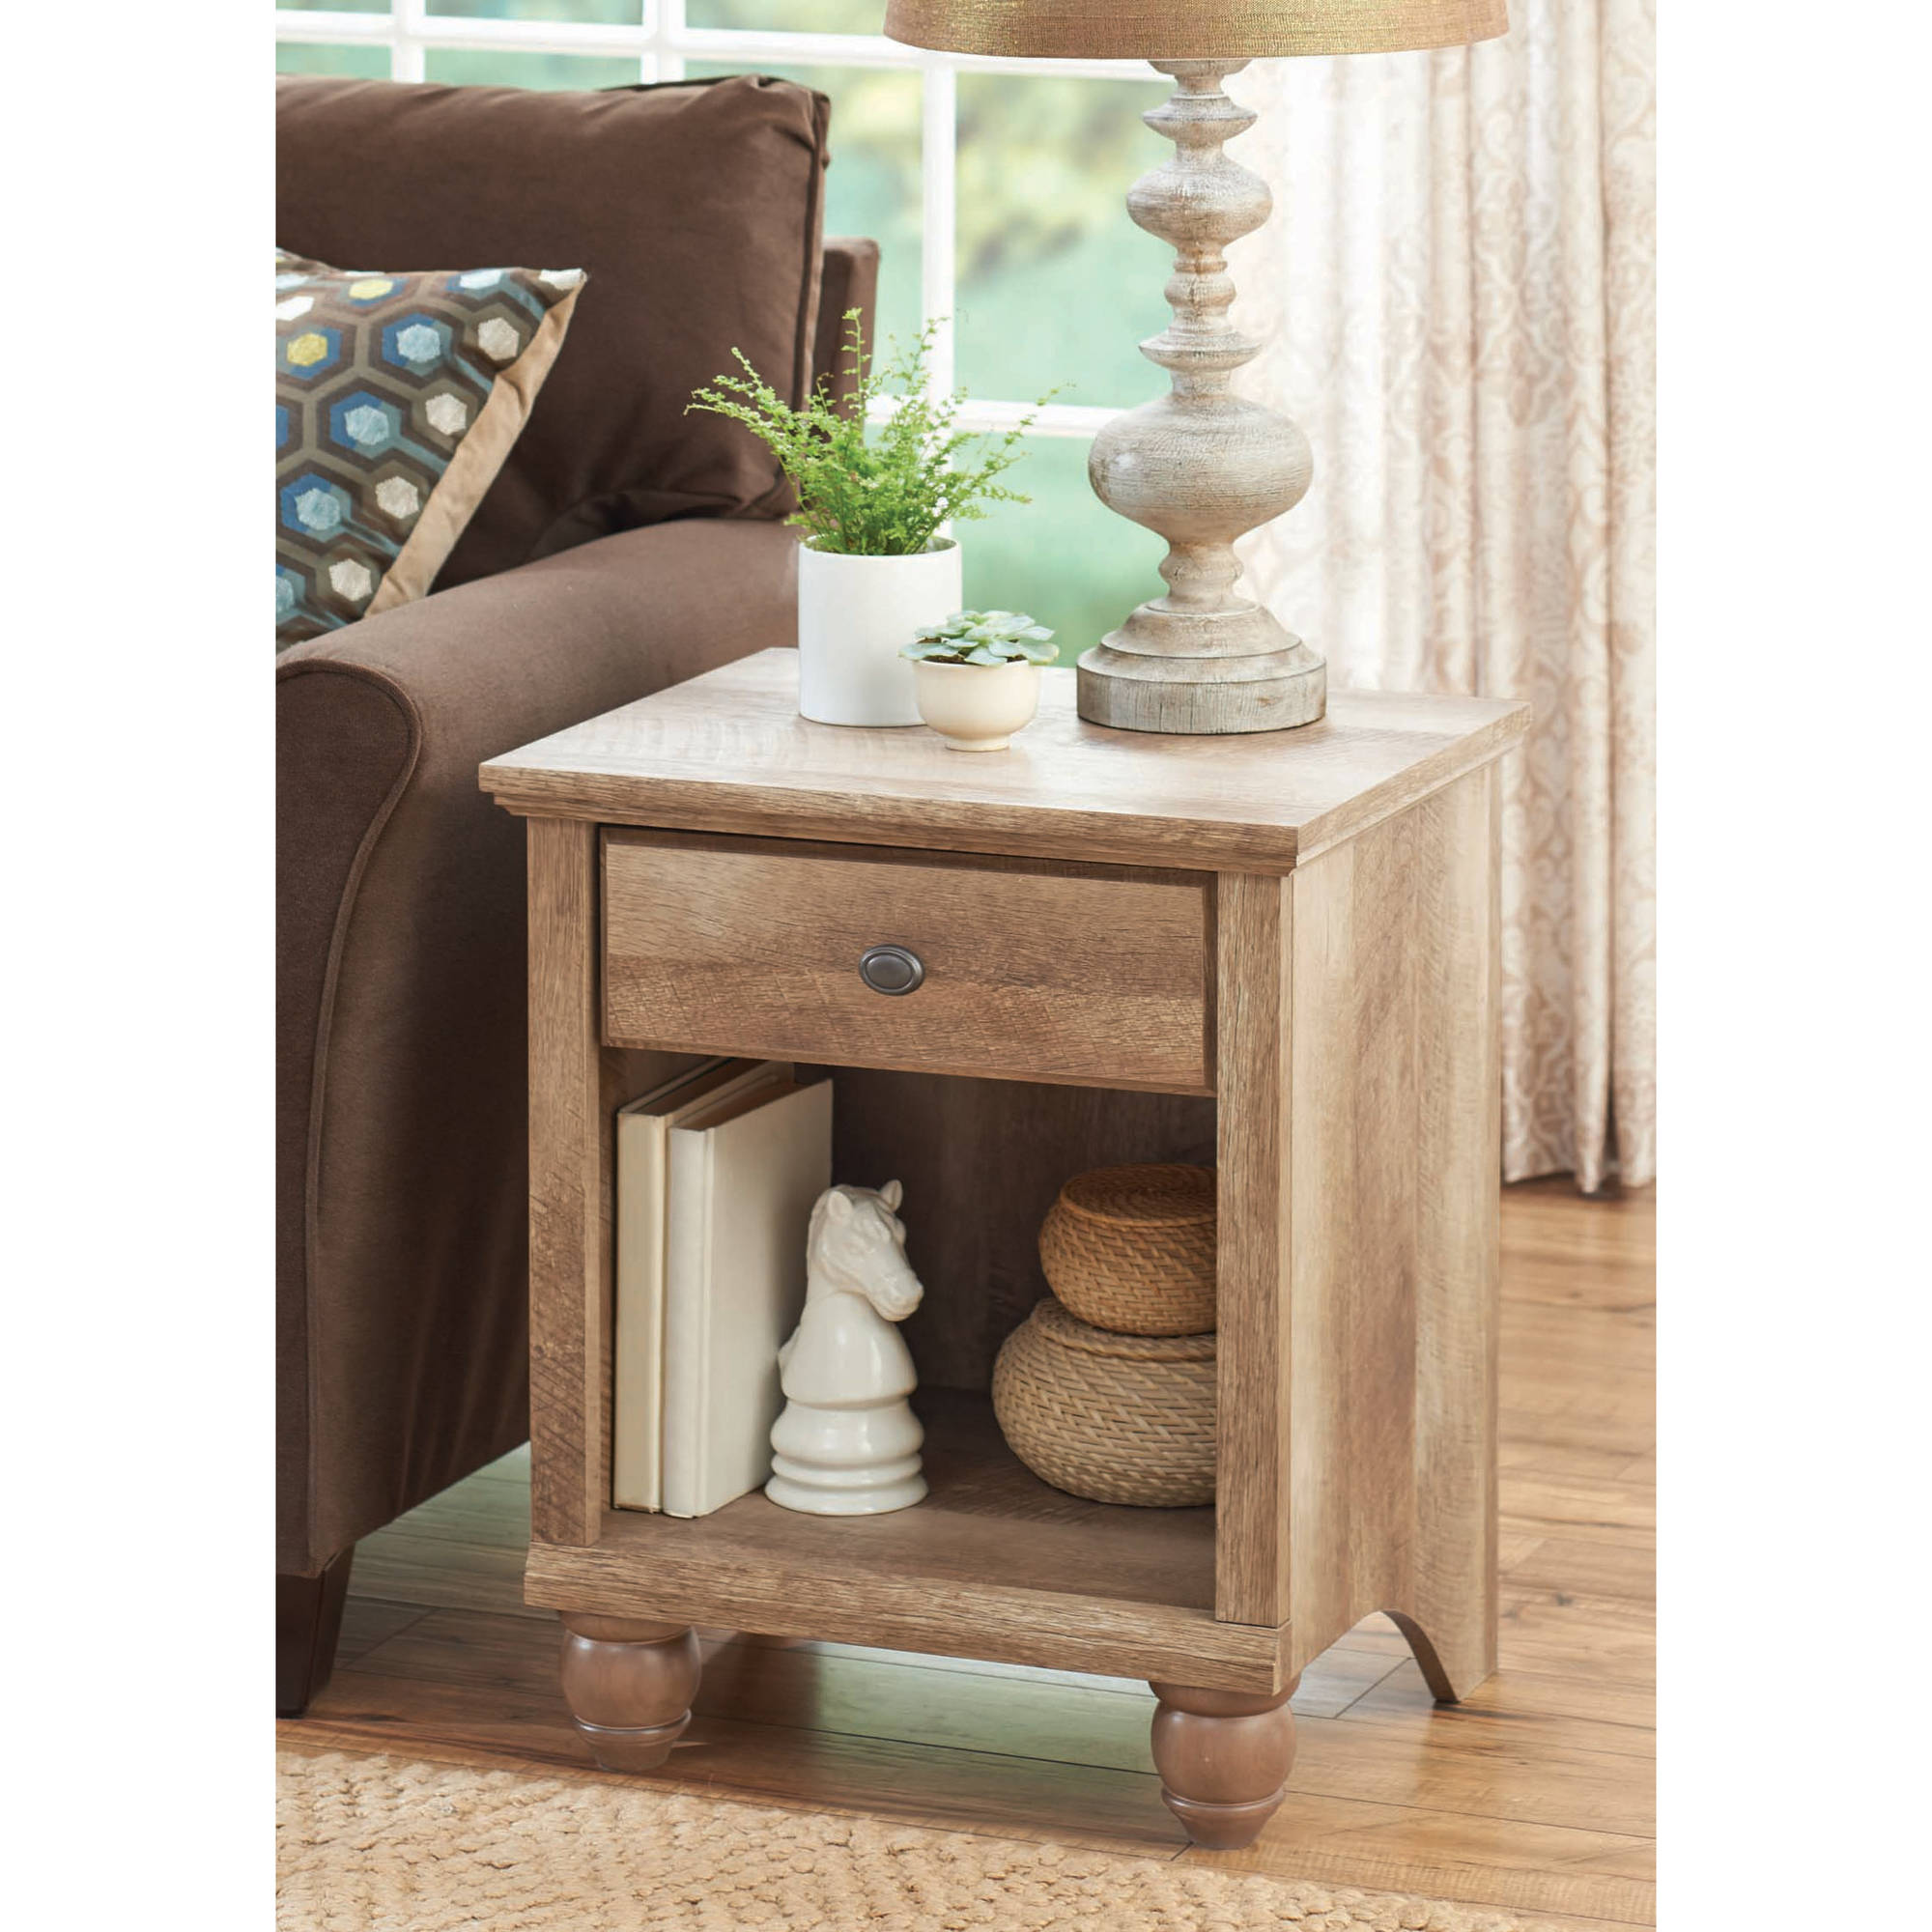 better homes gardens crossmill accent table weathered finish room essentials white house accessories best drum throne with backrest nautical bathroom vanity lights round quilted